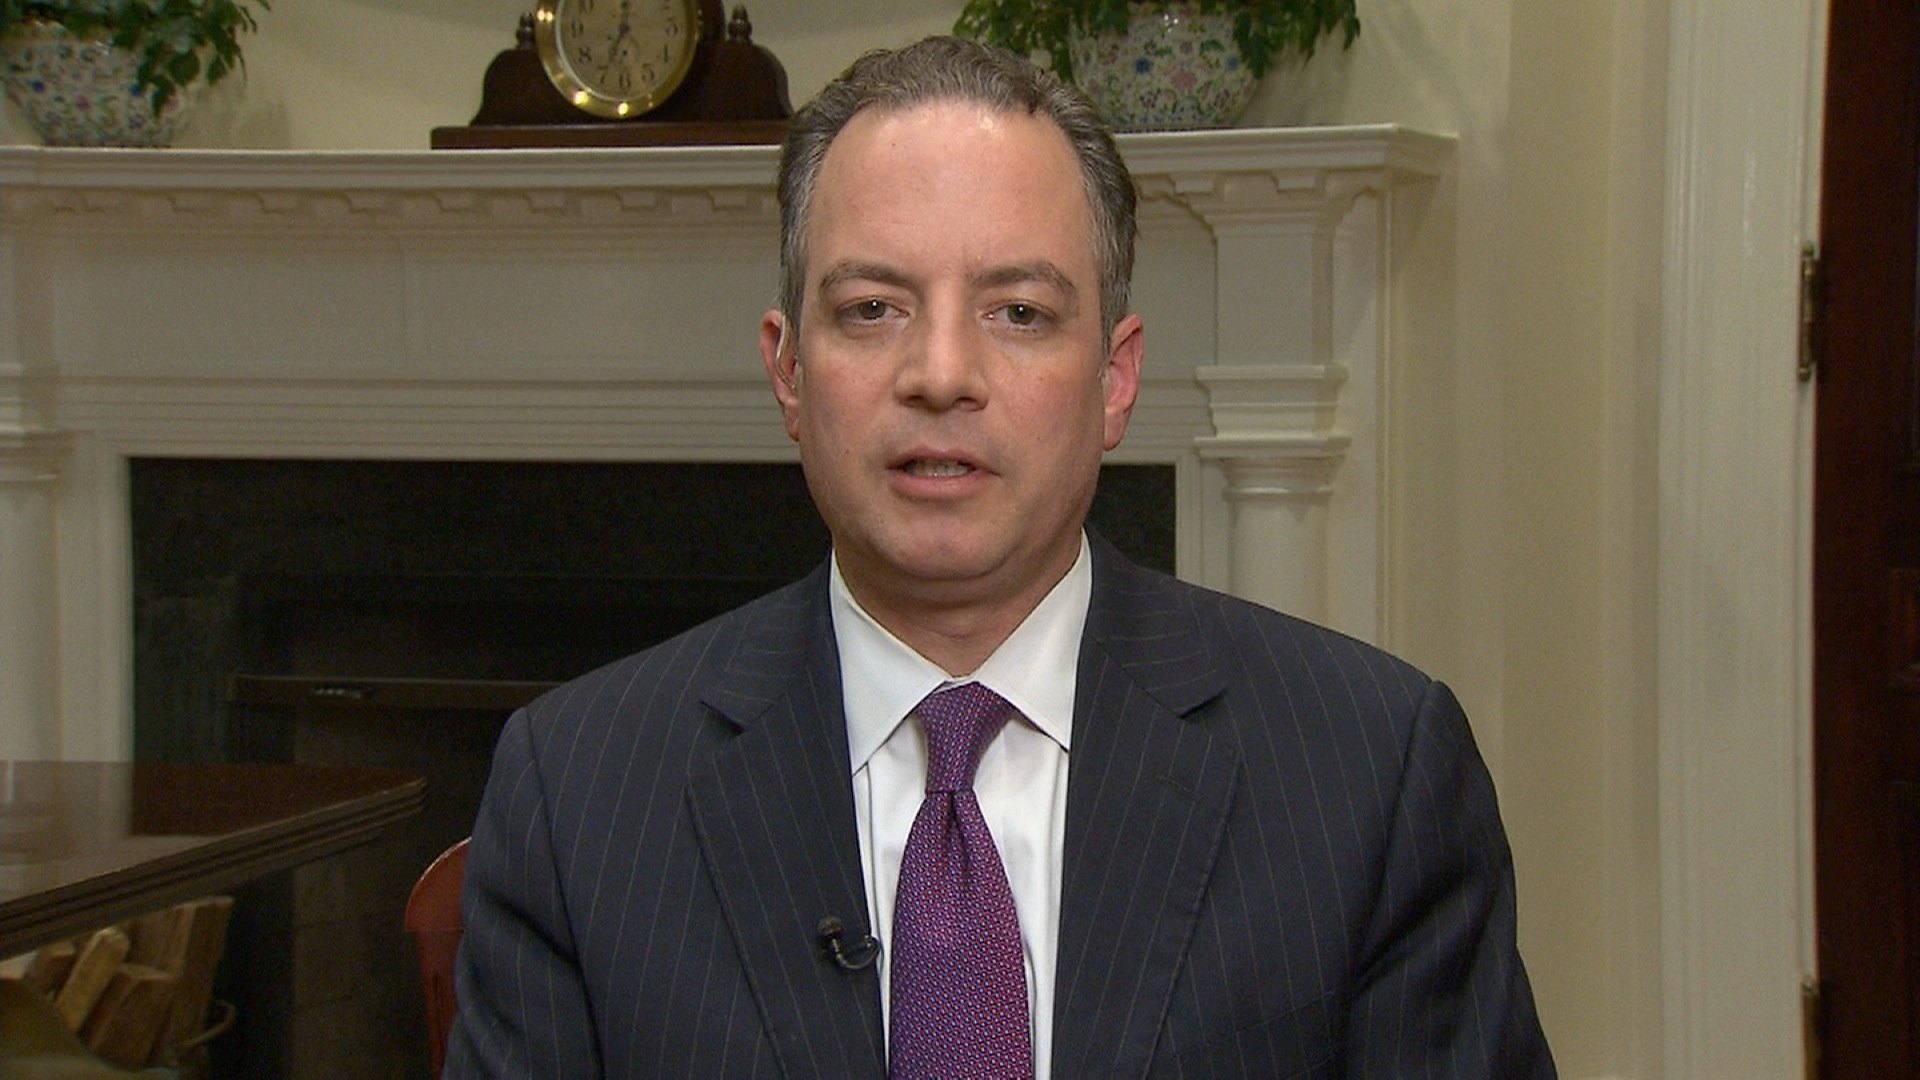 Donald Trump's firing of Reince Priebus completes his rejection of Washington